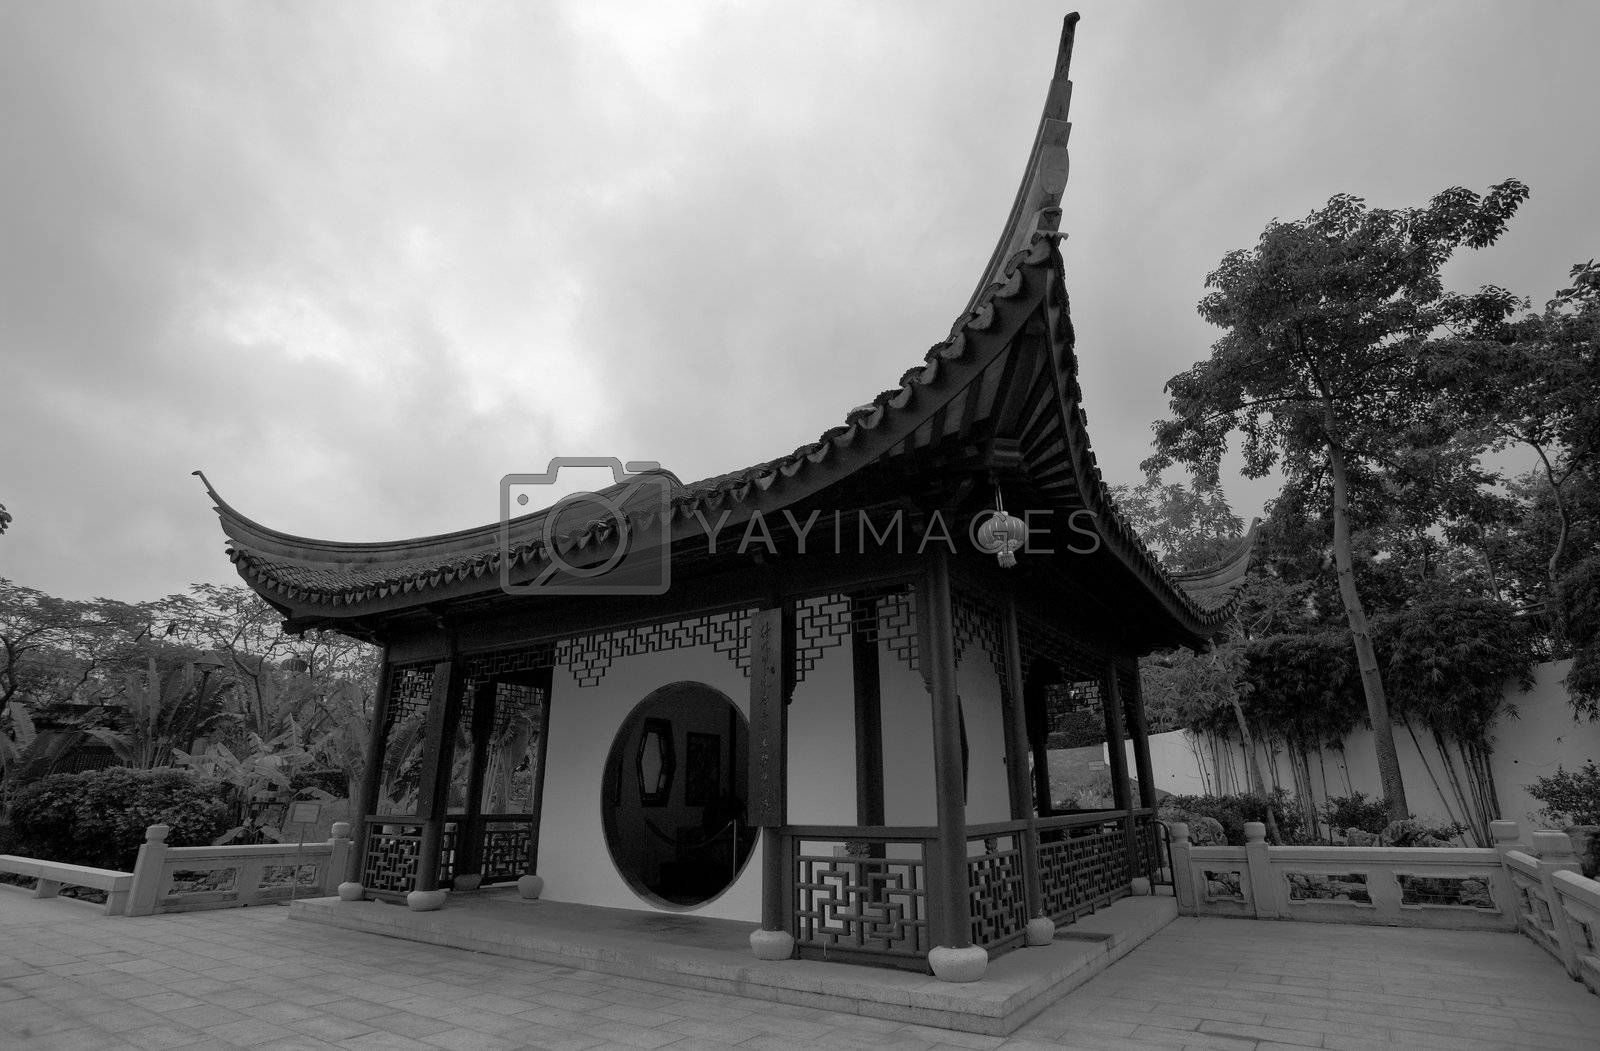 Royalty free image of hinese hut with nice roof by leungchopan